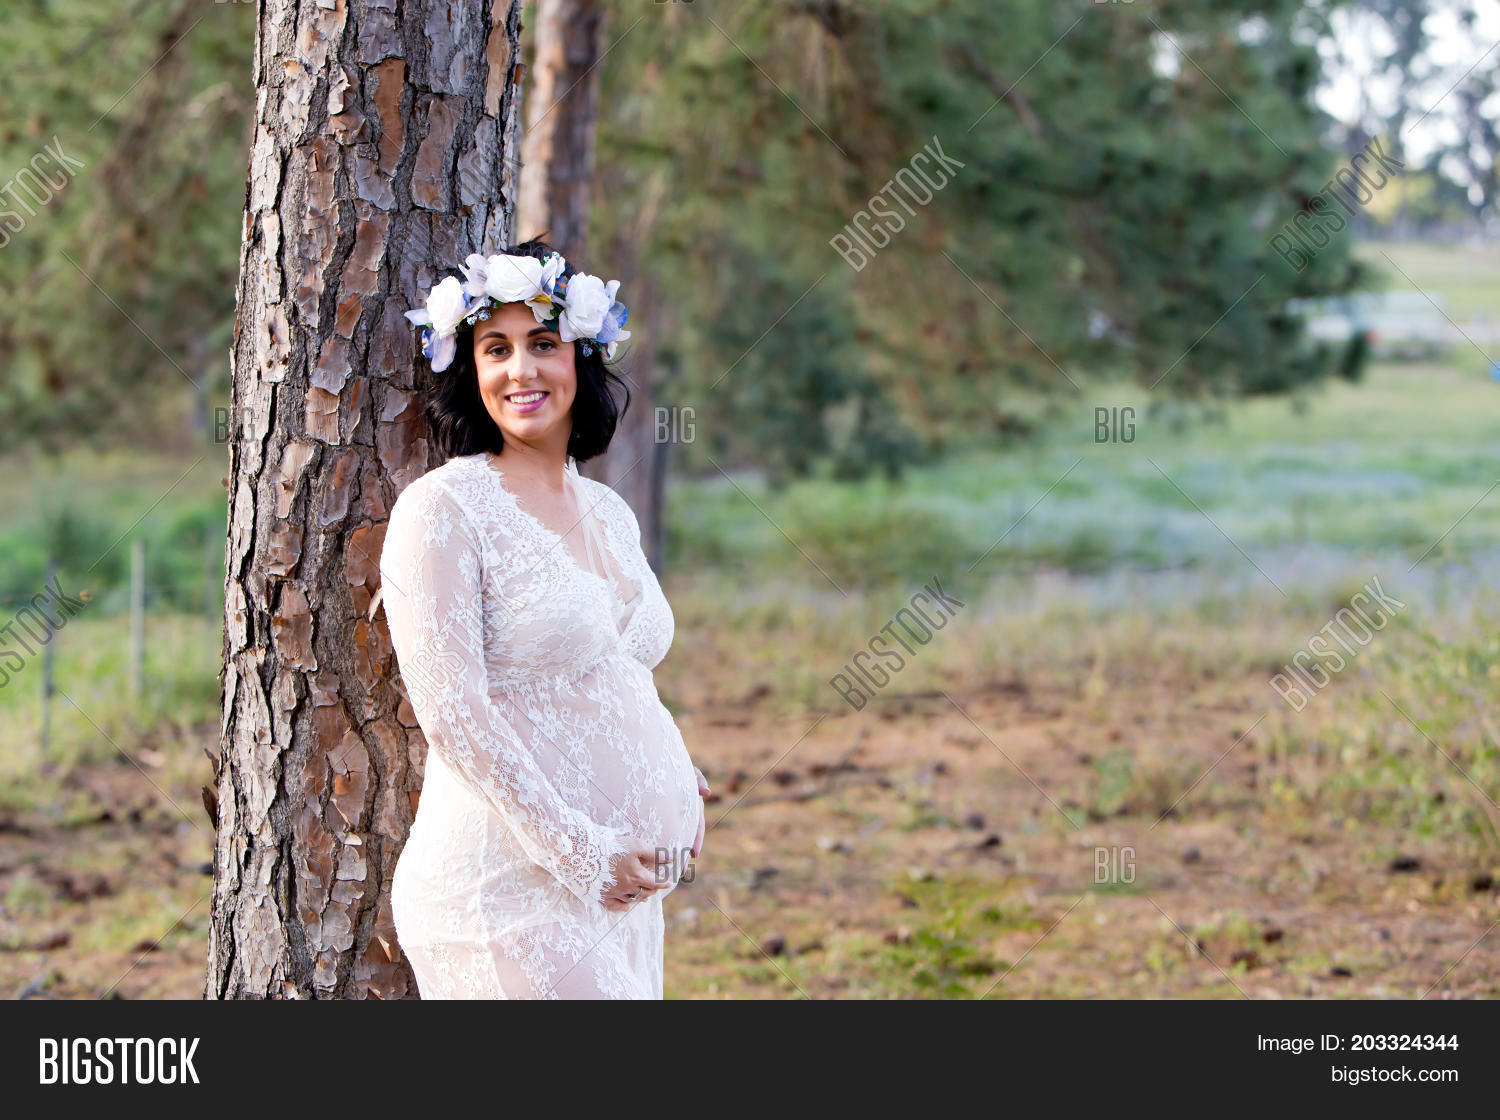 ada3c3982426e Beautiful pregnant woman in sheer white lace maternity gown outdoors  leaning against large pine tree trunk in field with copy space